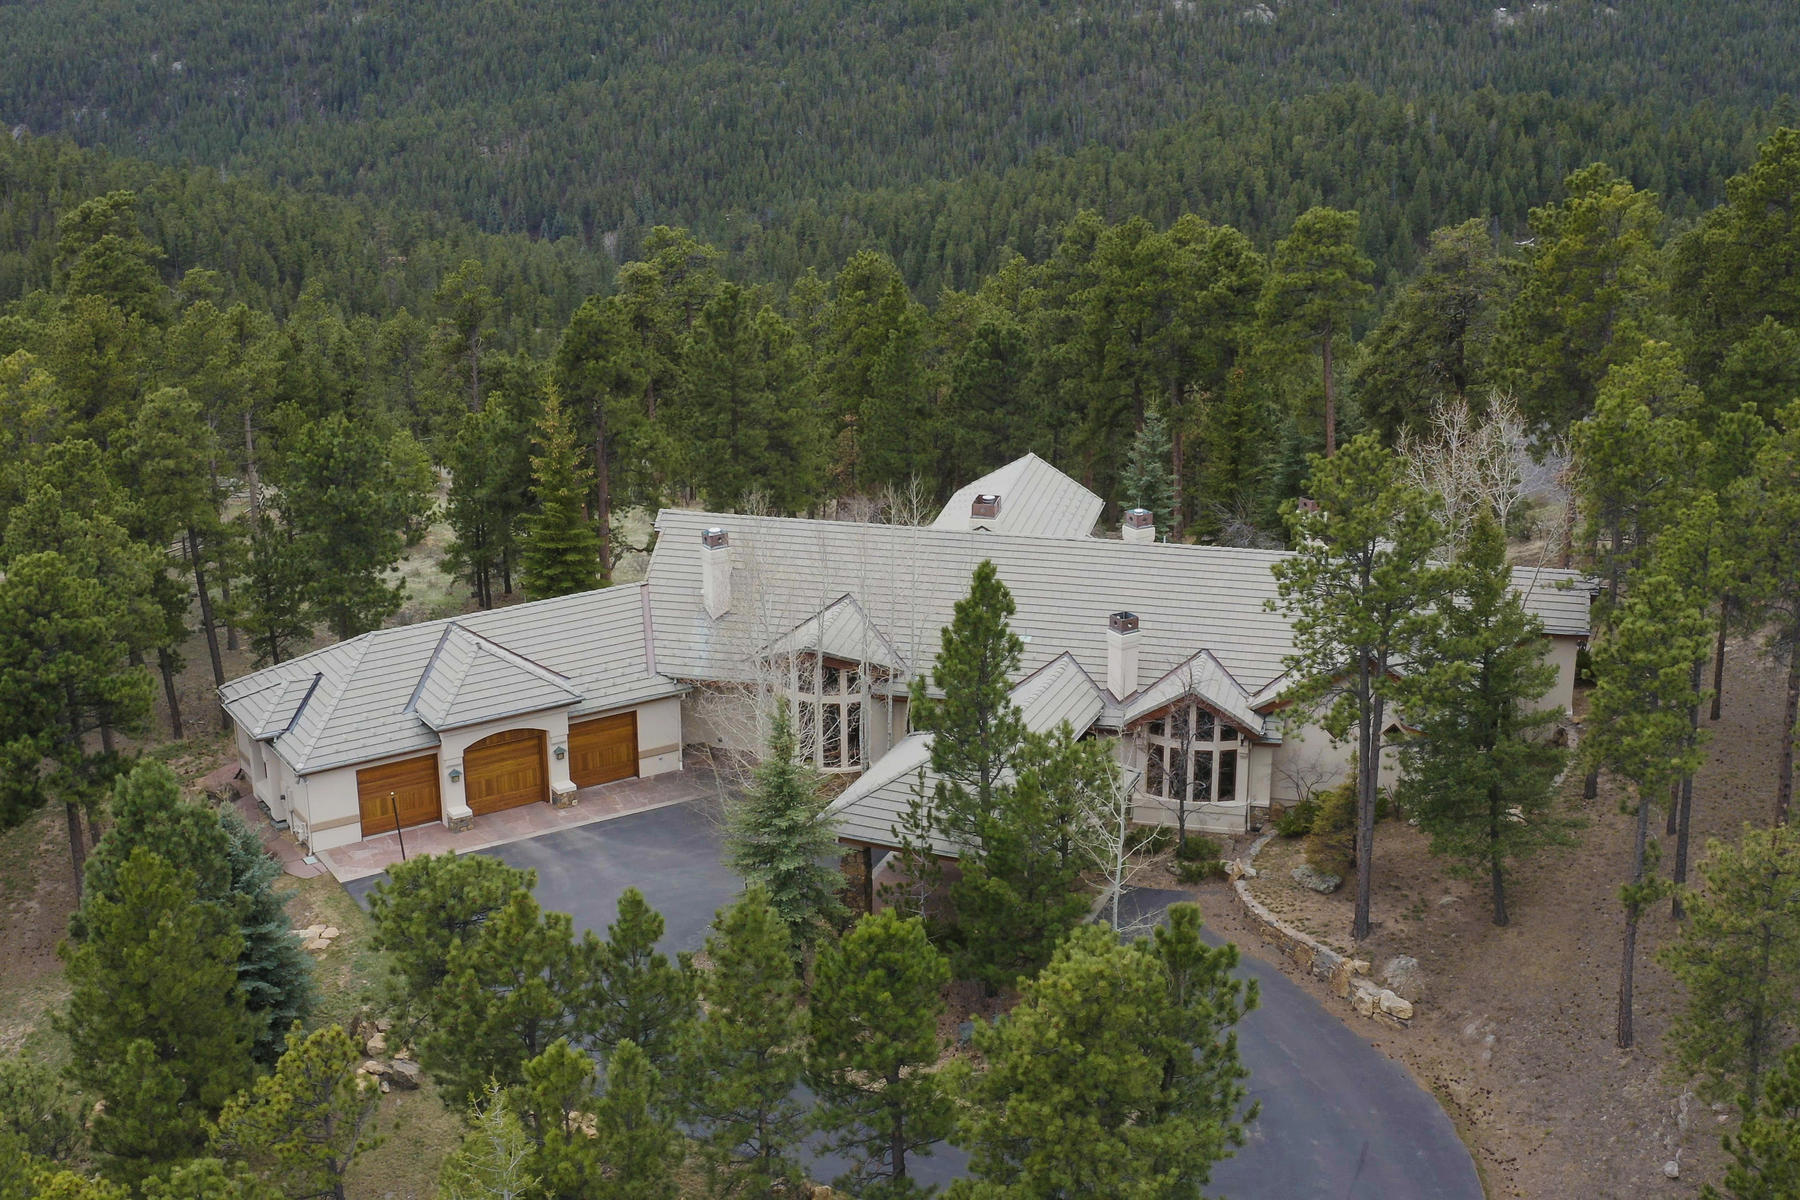 Single Family Homes for Sale at 31483 Morning Star Drive Evergreen, Colorado 80439 United States